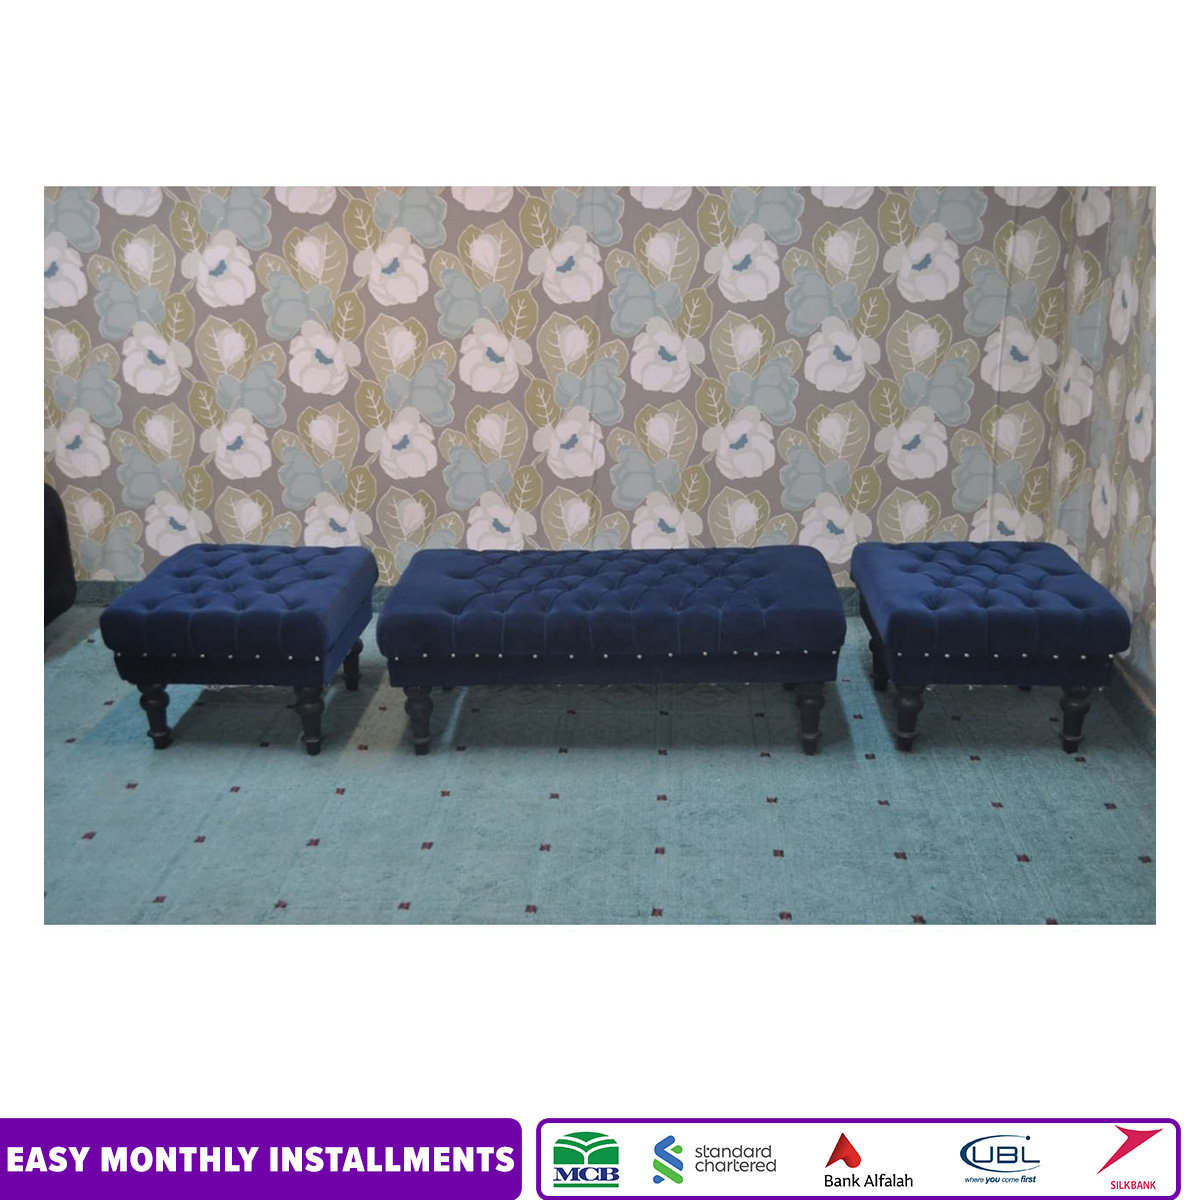 Galaxy 4 Seater Puffy Sets Fabric Blue  Valvid (Size 2 unit single seat 22x22 inches and 1 unit large 2 seater 44x22 complete set height 17 inches)